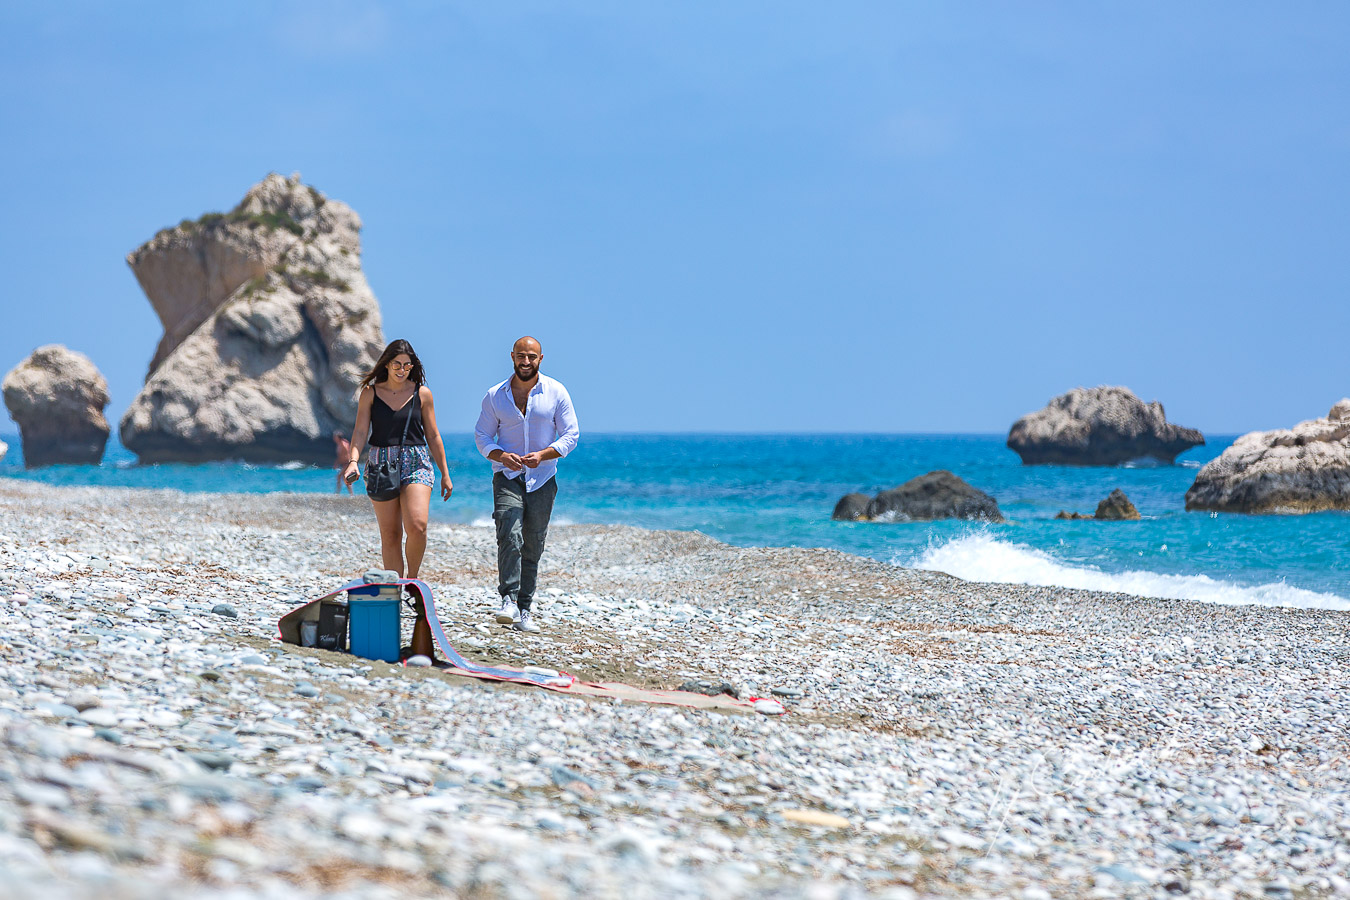 Christian and Jana are arriving at the Aphrodite Rocks where Christiana is planning to propose Jana.